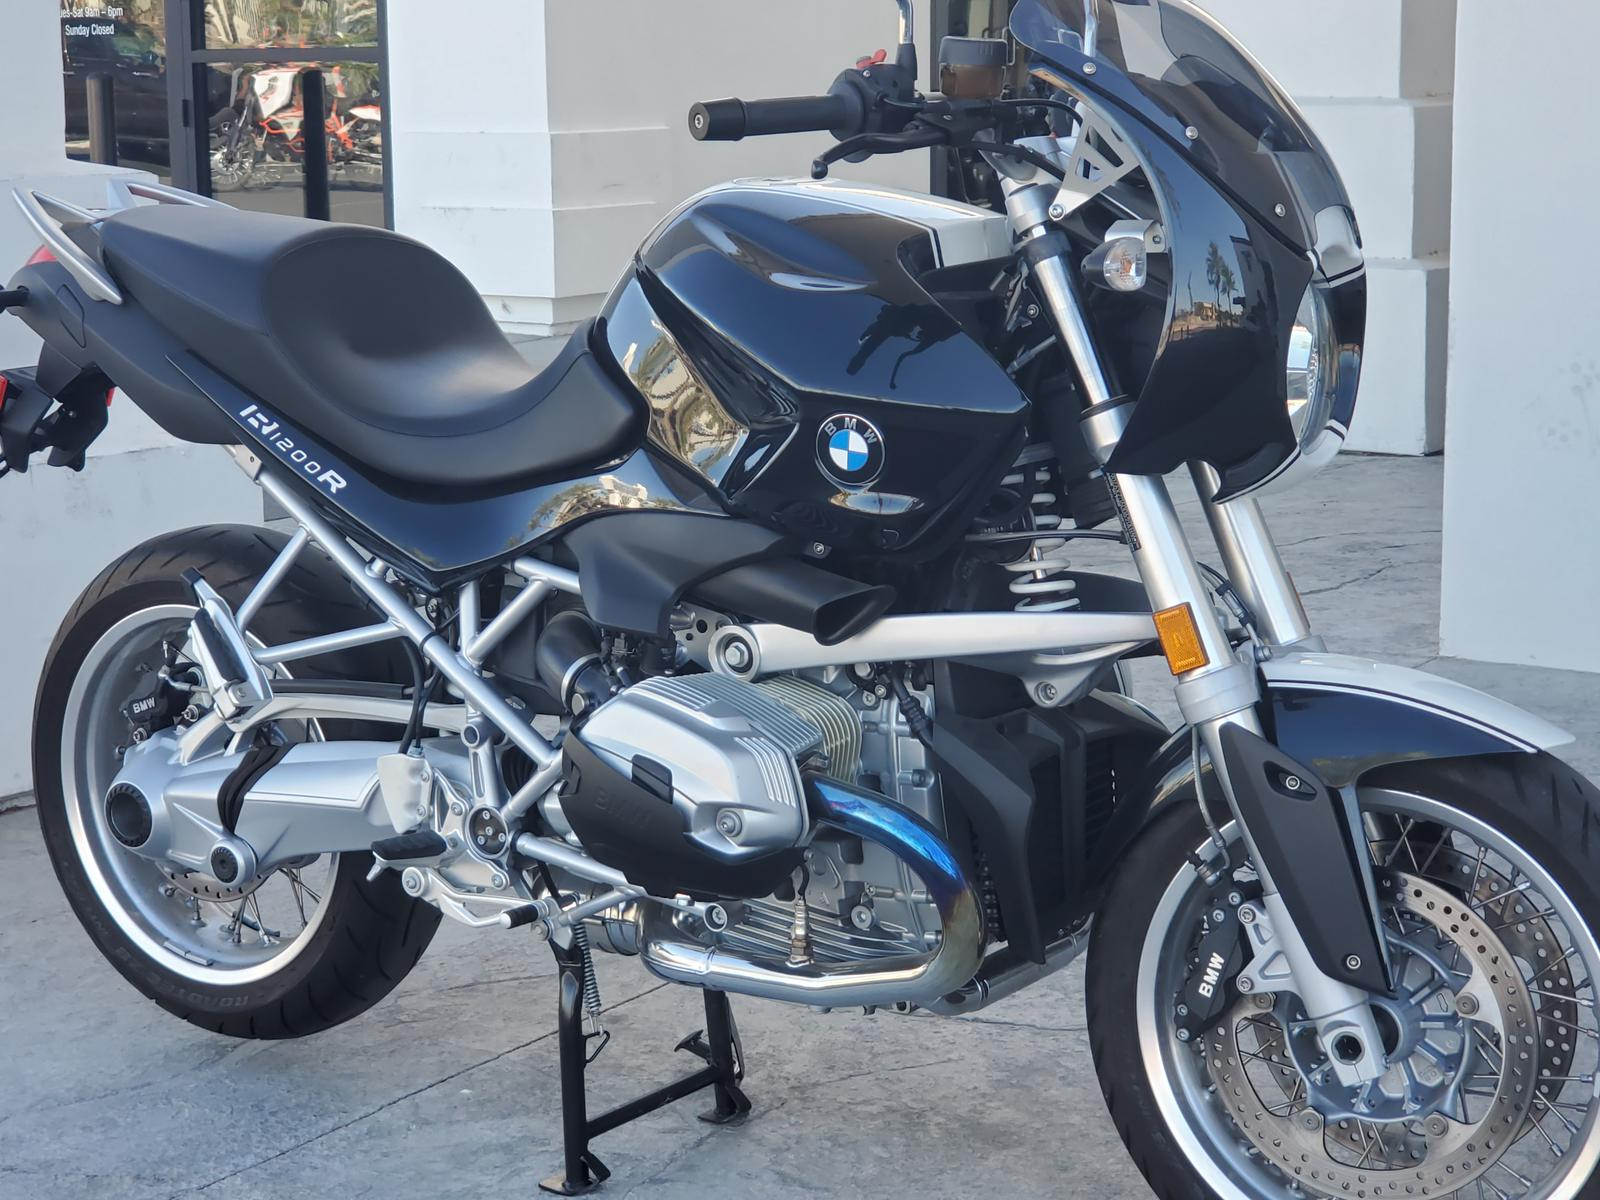 Enjoyable 2012 Bmw R1200R For Sale In Las Vegas Nv Freedom Euro Cycle Gamerscity Chair Design For Home Gamerscityorg